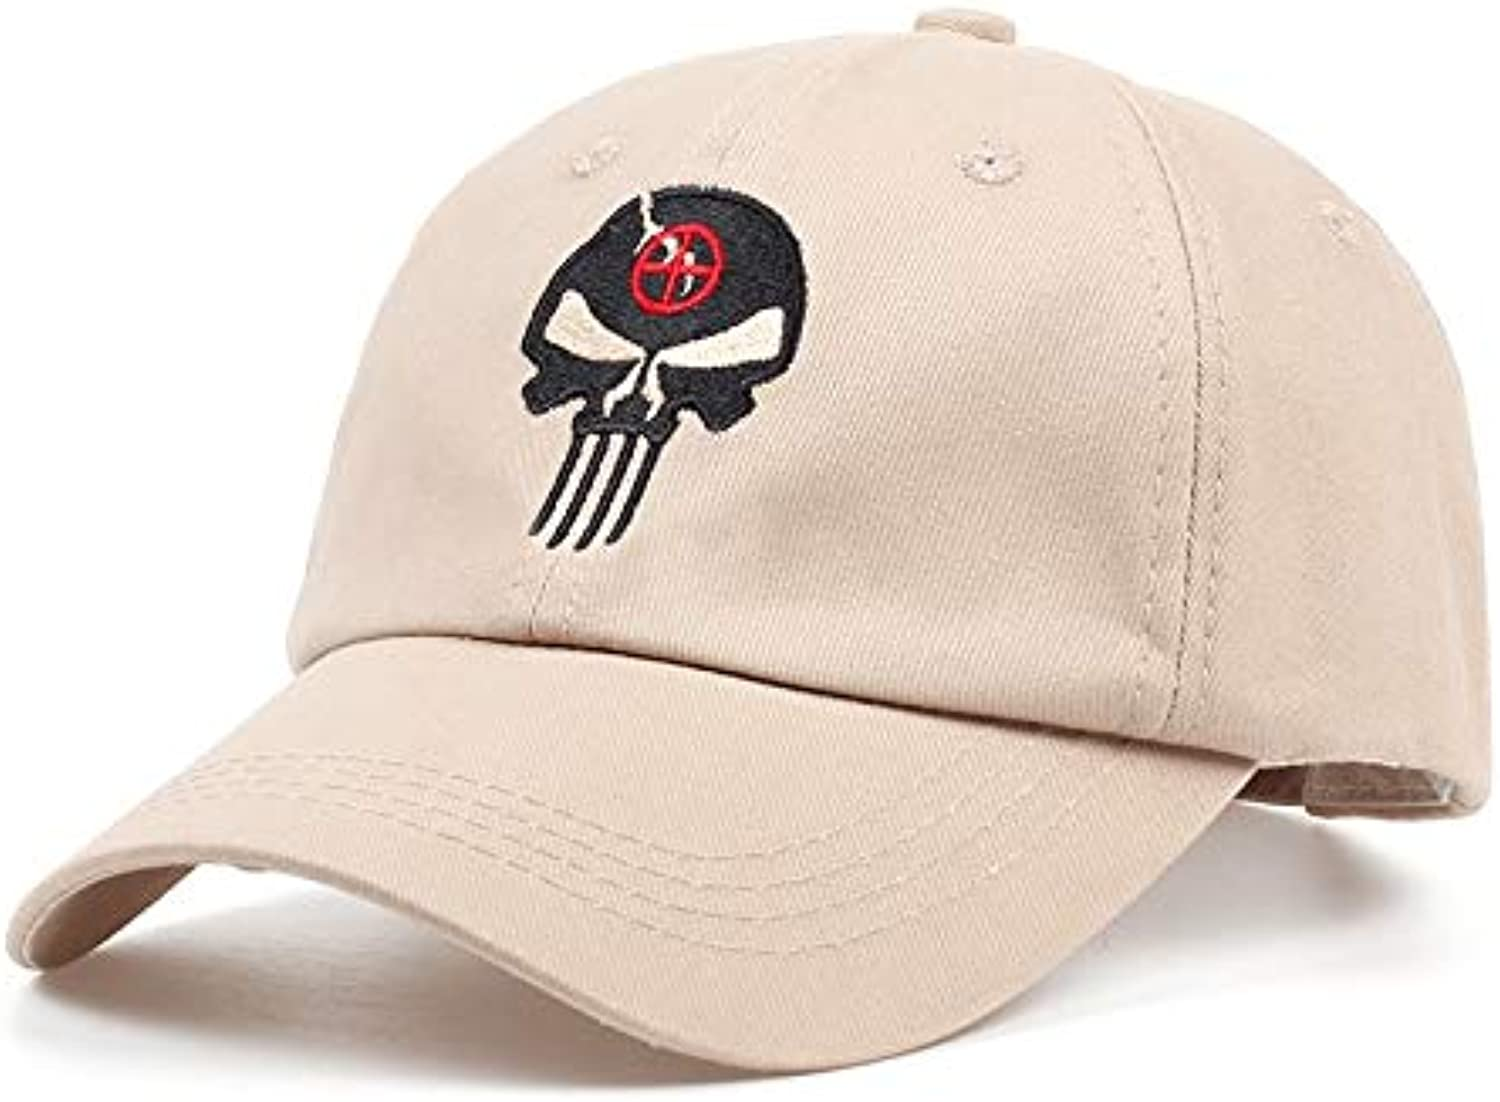 Chlally 100% Cotton Embroidered Baseball Cap Tactics Snapback Hats Outdoor Casual Sport